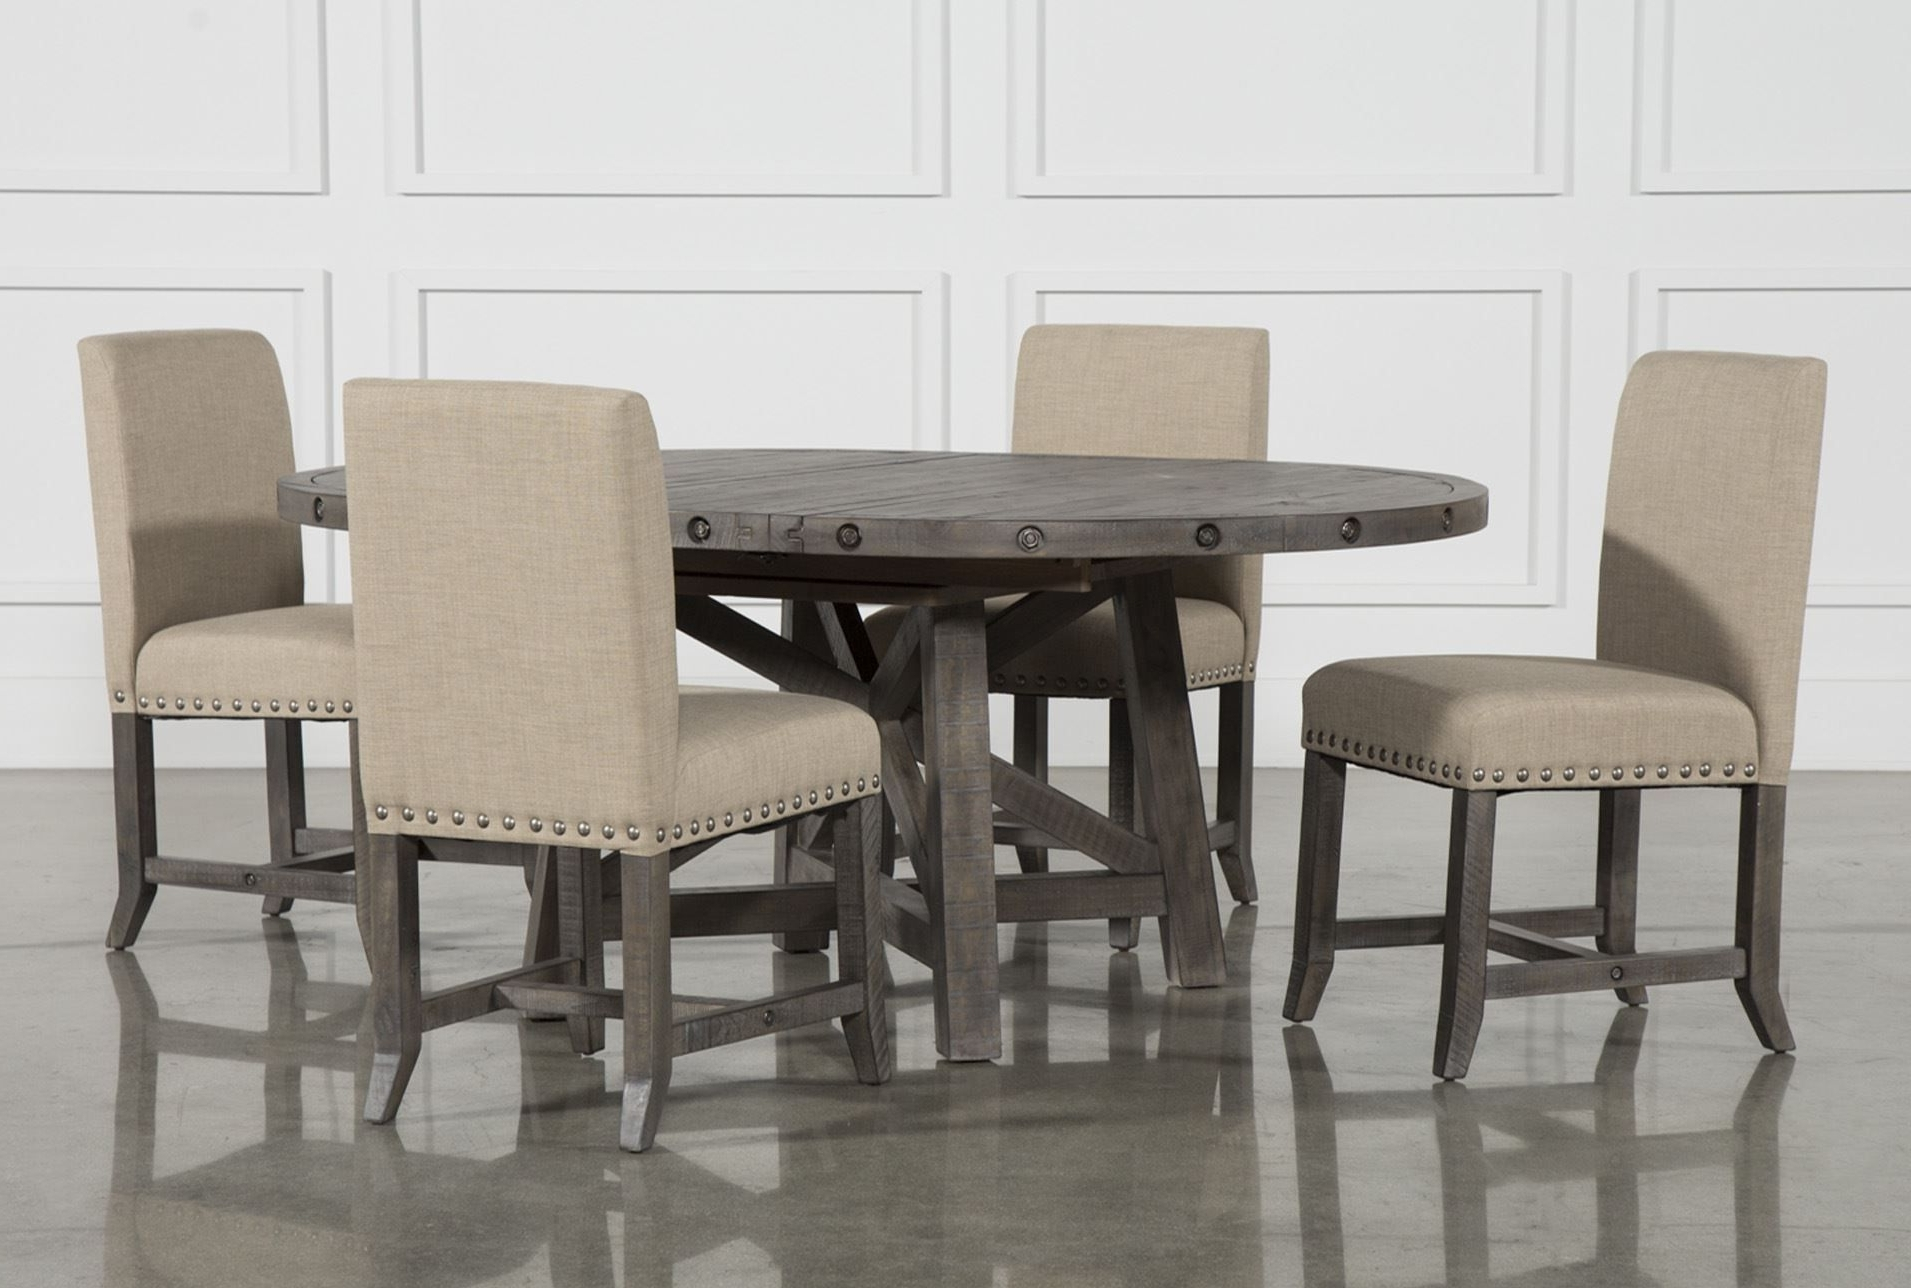 Jaxon Grey Rectangle Extension Dining Tables Pertaining To Trendy Jaxon Grey 5 Piece Round Extension Dining Set W/upholstered Chairs (View 3 of 25)